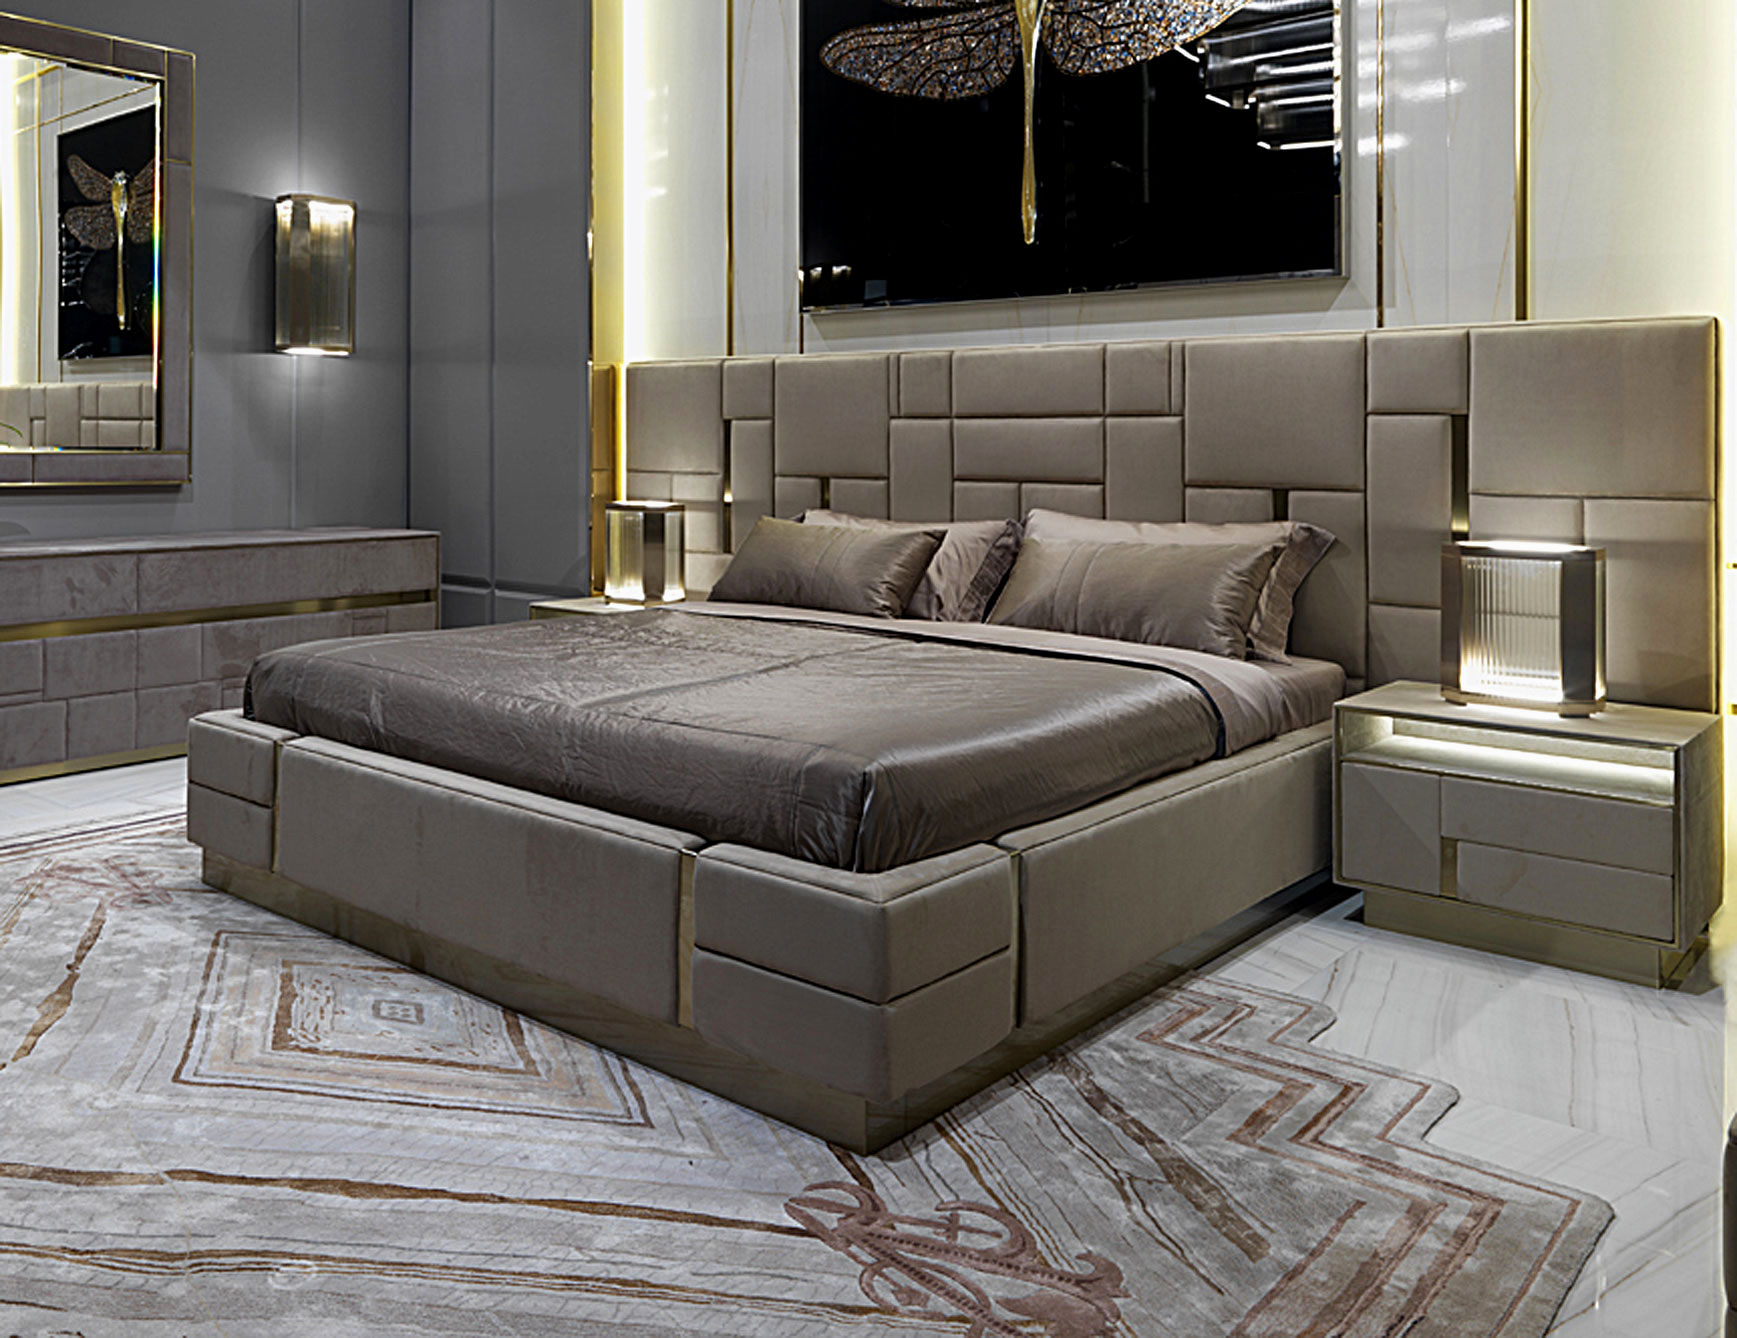 luxury large sectional sofa inspiration-Awesome Large Sectional sofa Plan